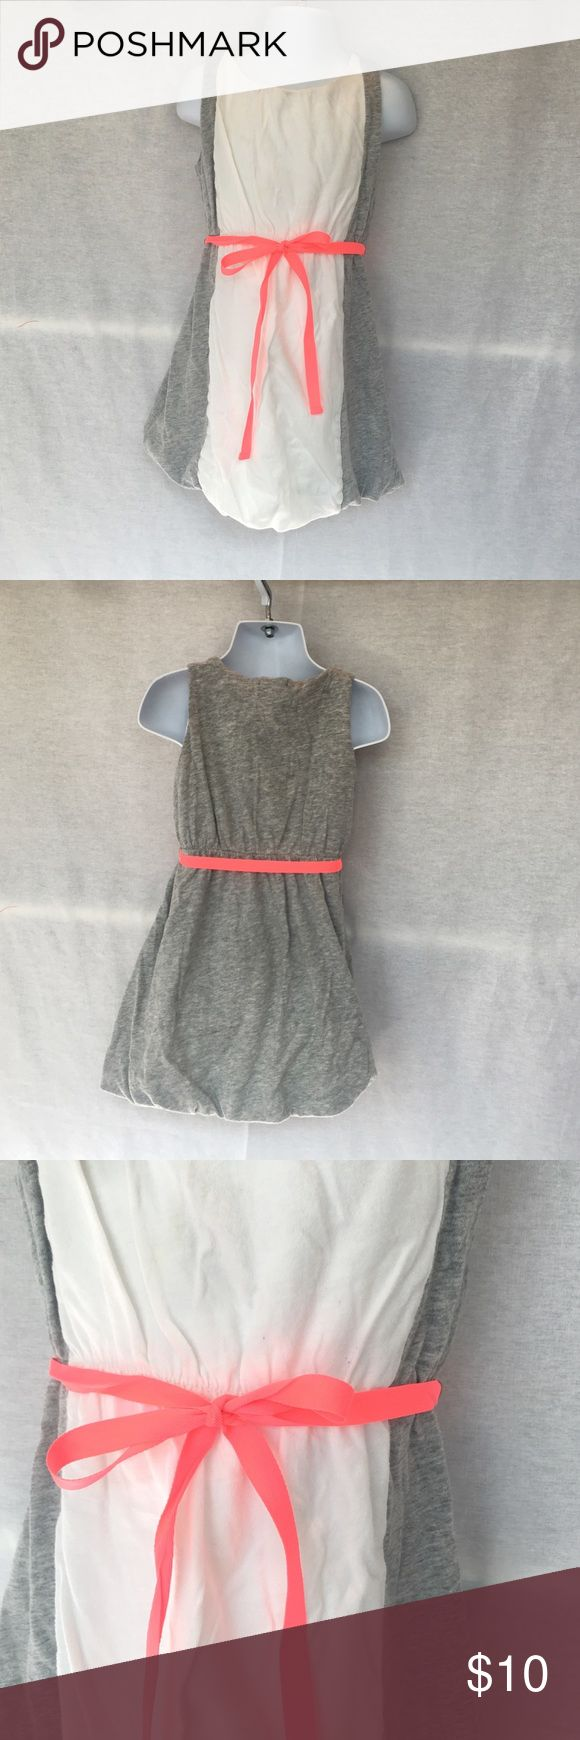 J Crew Kids dress with ribbon belt size 4 J Crew Kids dress with ribbon belt size 4 J. Crew Dresses